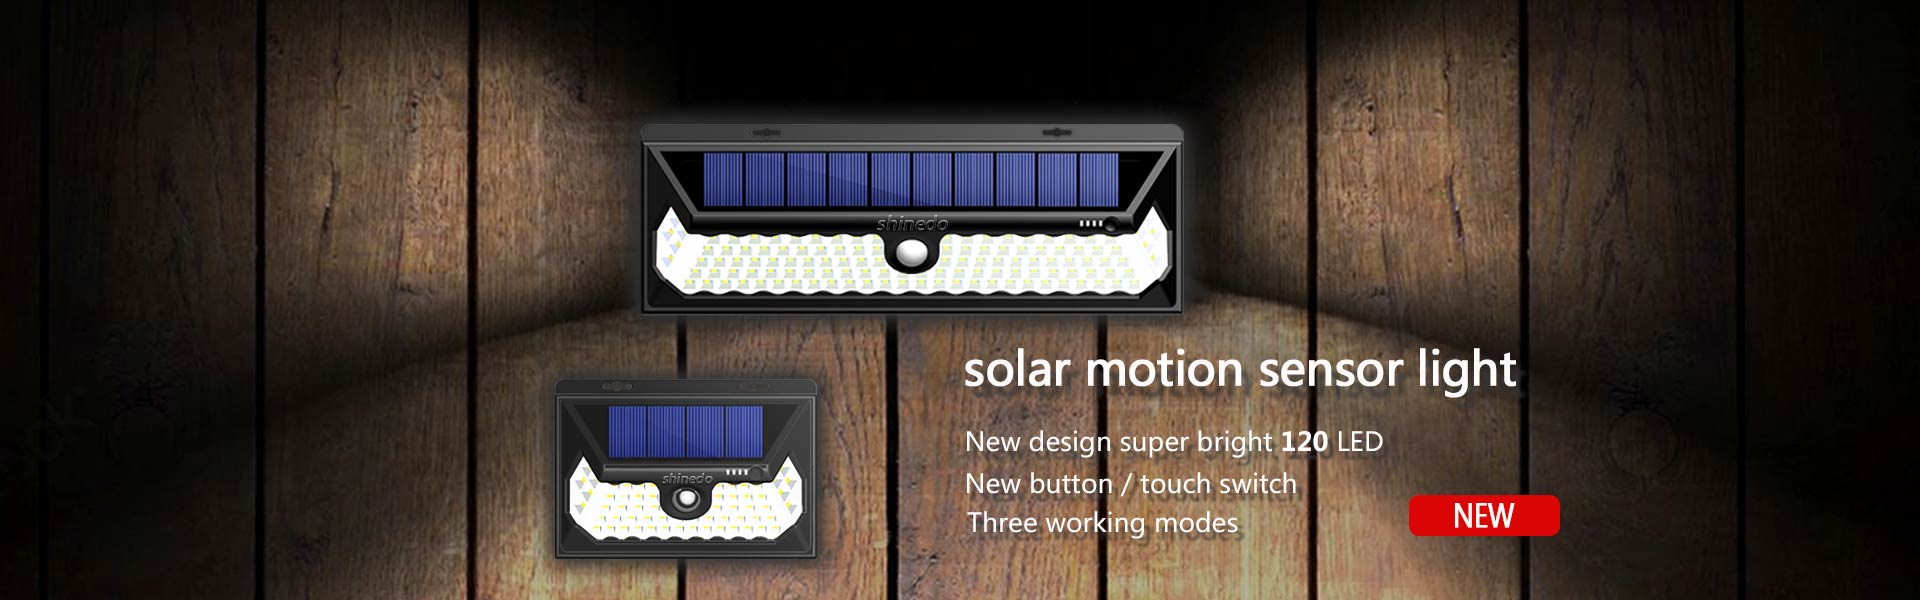 Solar Motion Sensor Light Manufacturer China